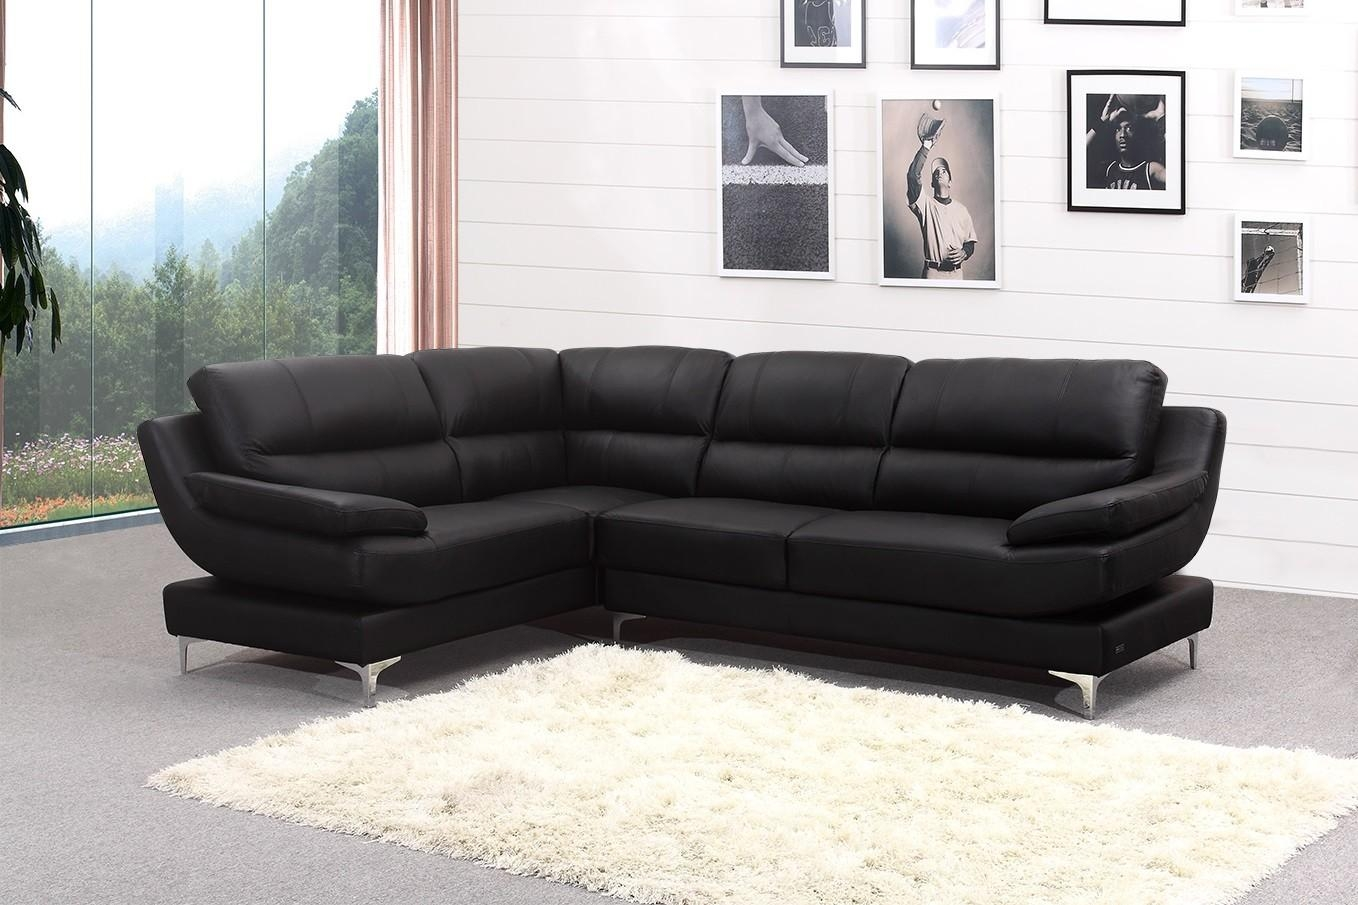 20 choices of black corner sofas sofa ideas for Black corner sofa